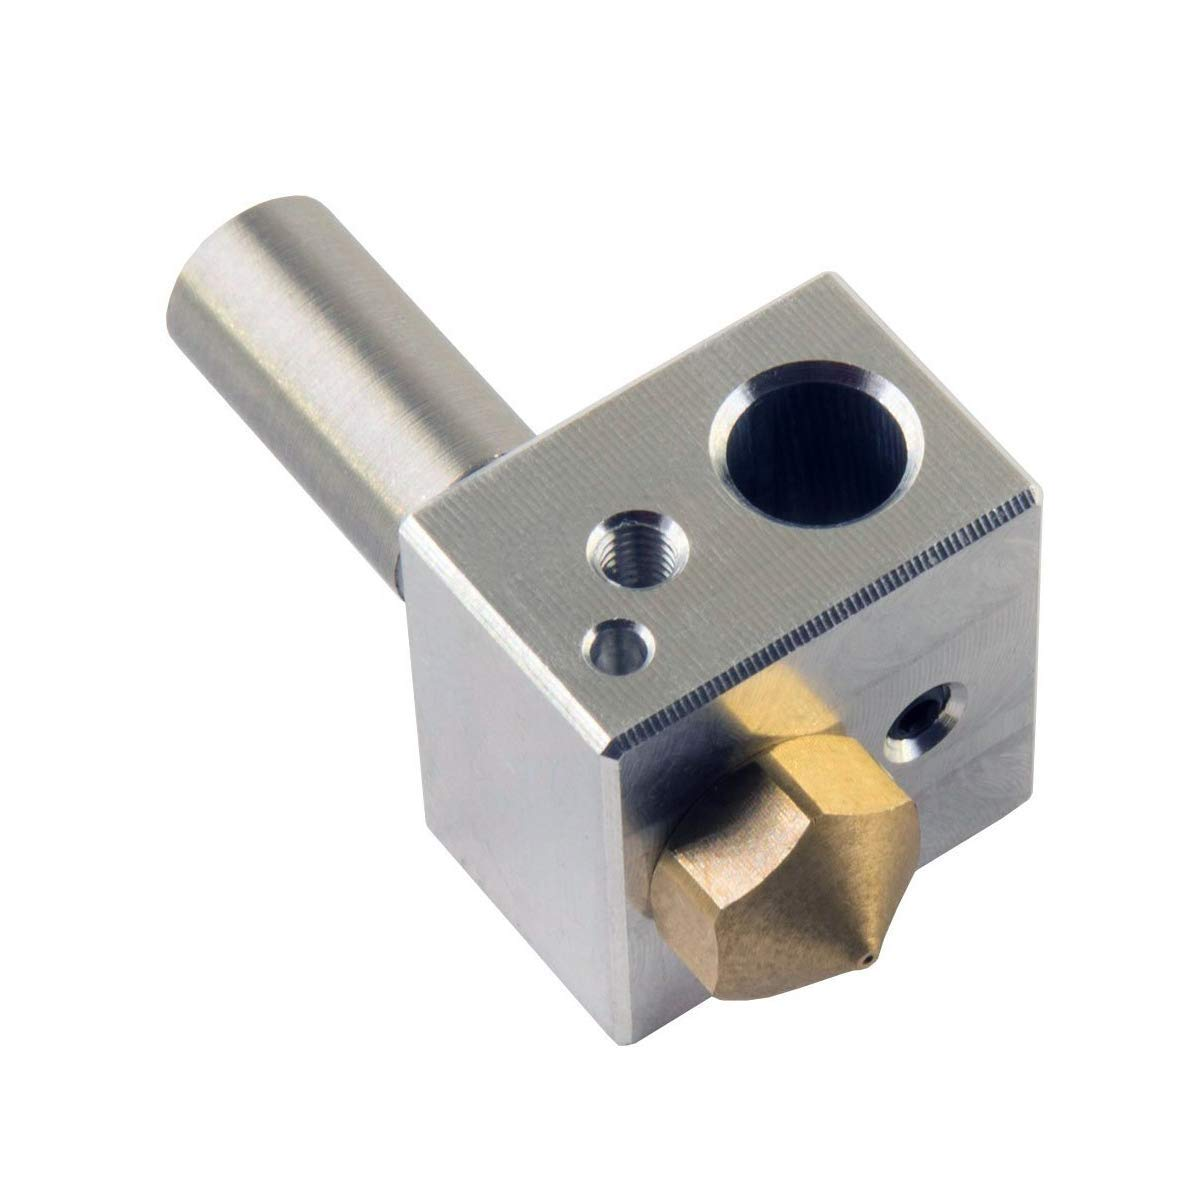 YuenPau MK10 Hotend Kit for 3D Printer M7 Brass Nozzle and Throat with PTFE Tube and Aluminum Heater Block Fit with M3 and M4 Thermistor